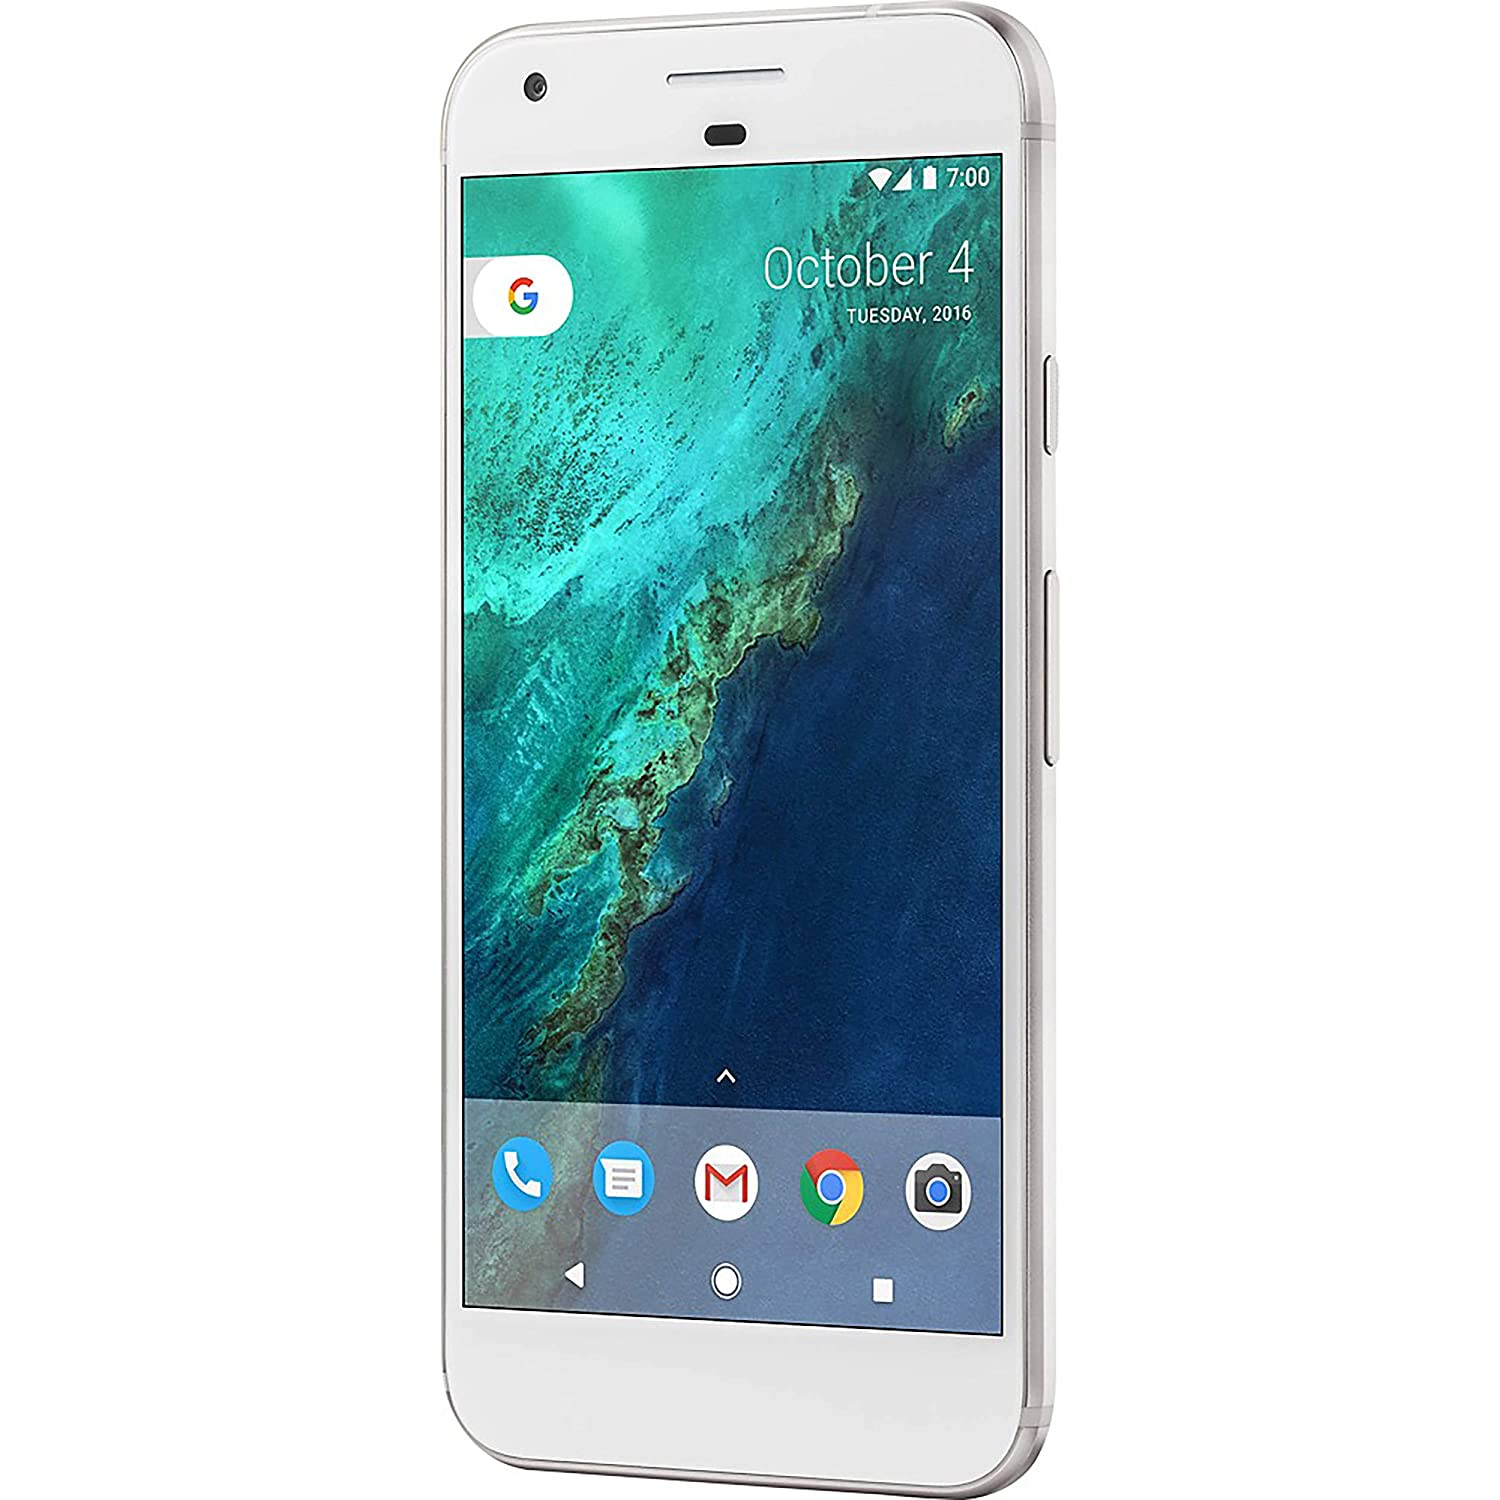 Google Pixel Xl Phone 32gb 55 Inch Display Factory Play Gift Card Region Indonesia 50000 Unlocked Us Version Very Silver Cell Phones Accessories